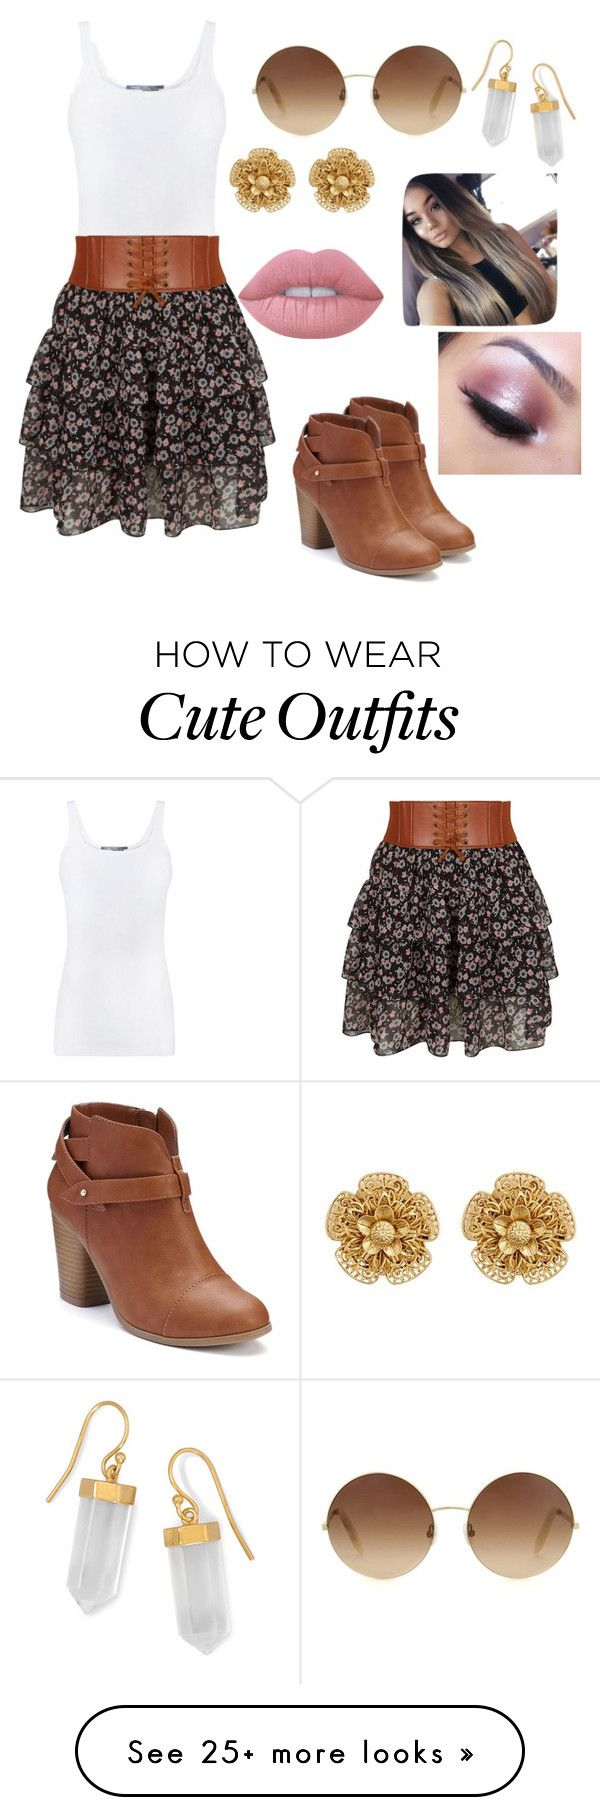 """Cute outfits"" by da-queen078 on Polyvore featuring Vince, New Look, LC Lauren Conrad, Victoria Beckham, BillyTheTree, Miriam Haskell, Lime Crime and Too Faced Cosmetics"